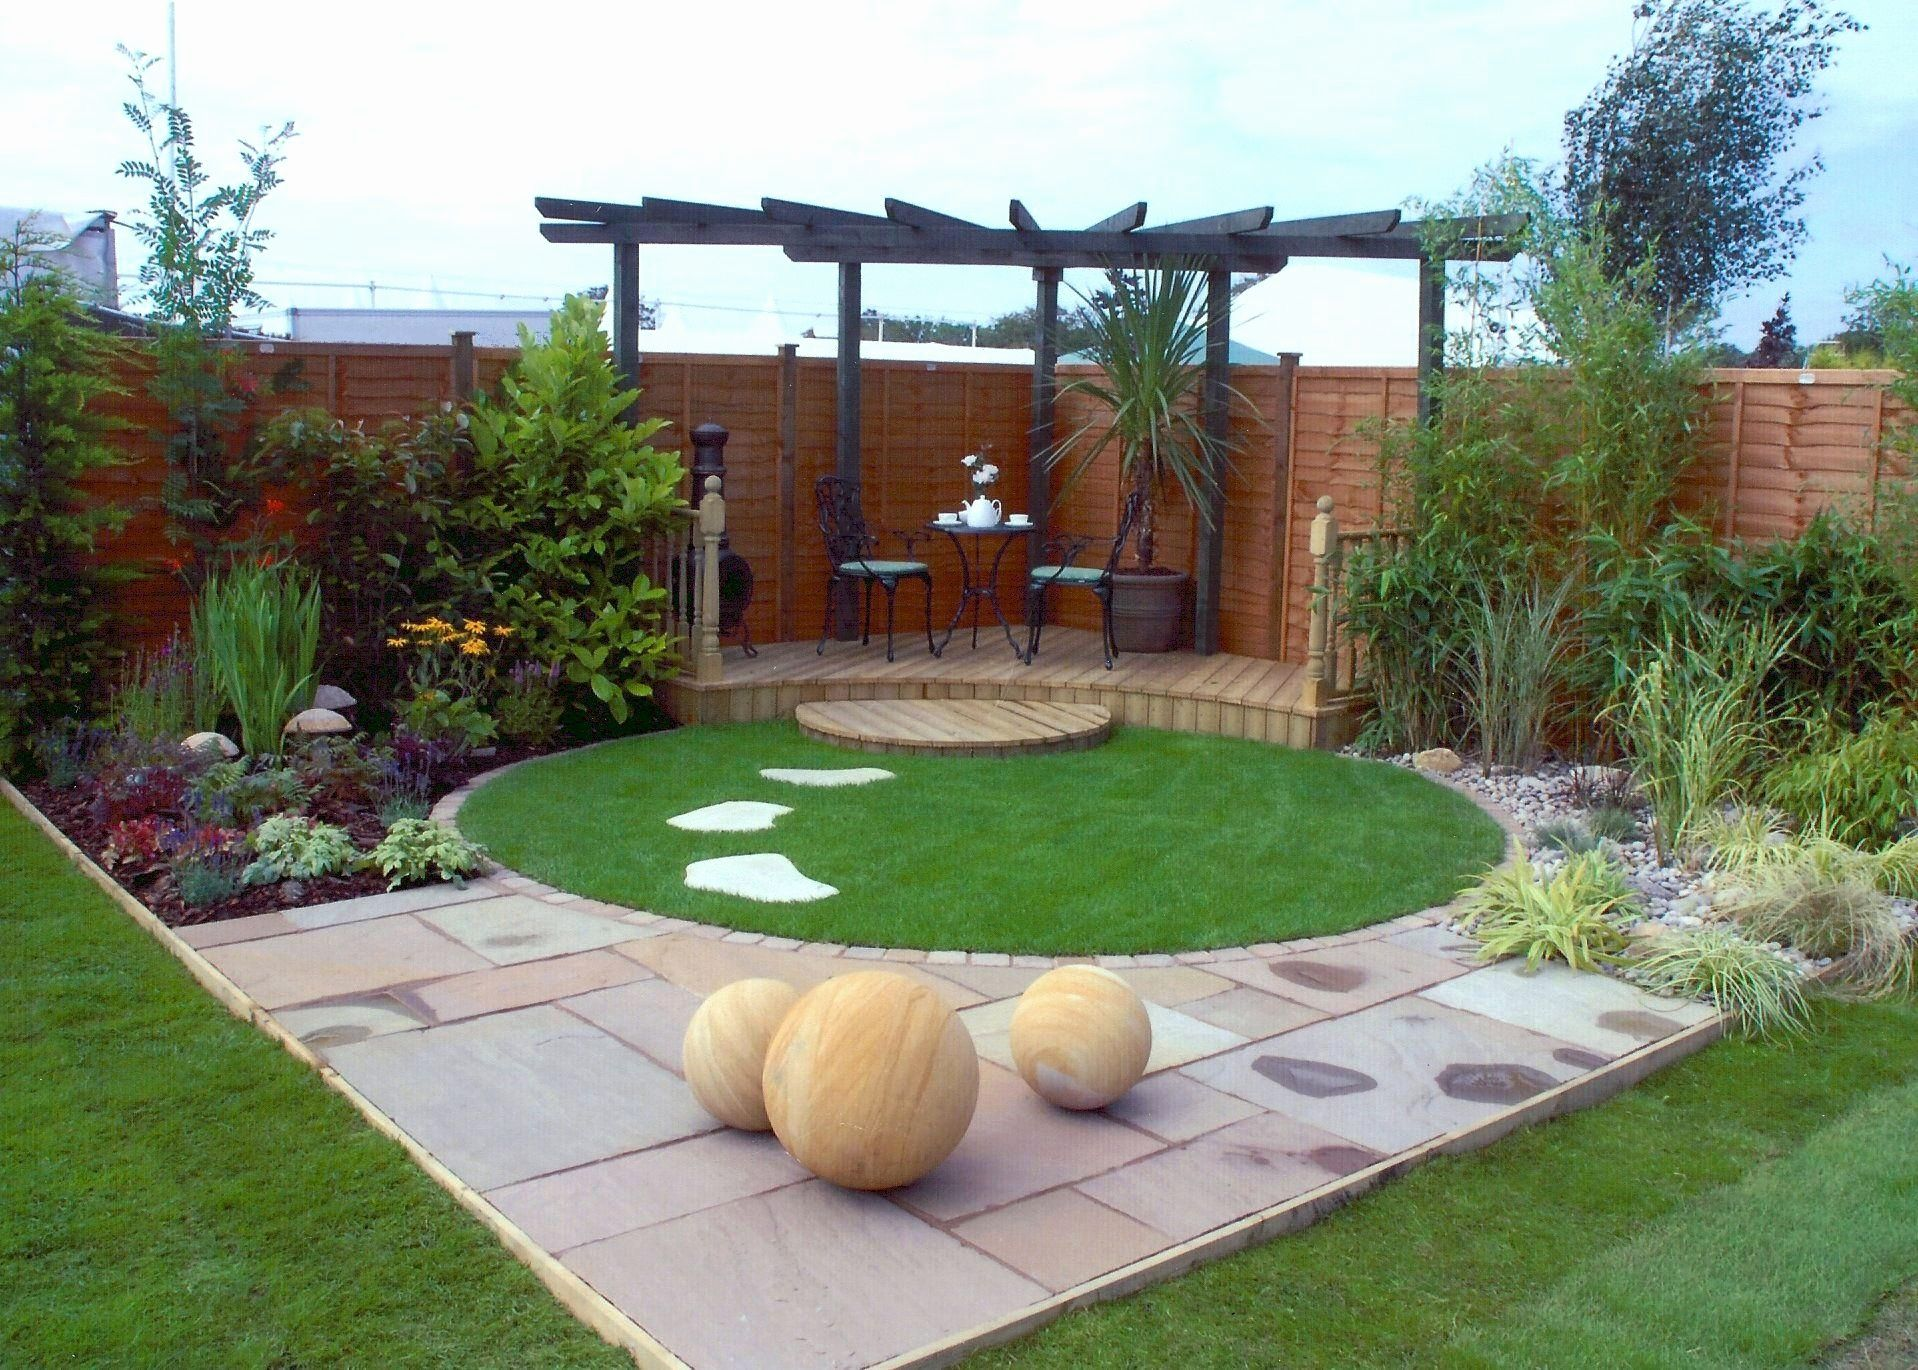 Image result for circular lawn garden designs | Small ... on Square Patio Designs id=27395